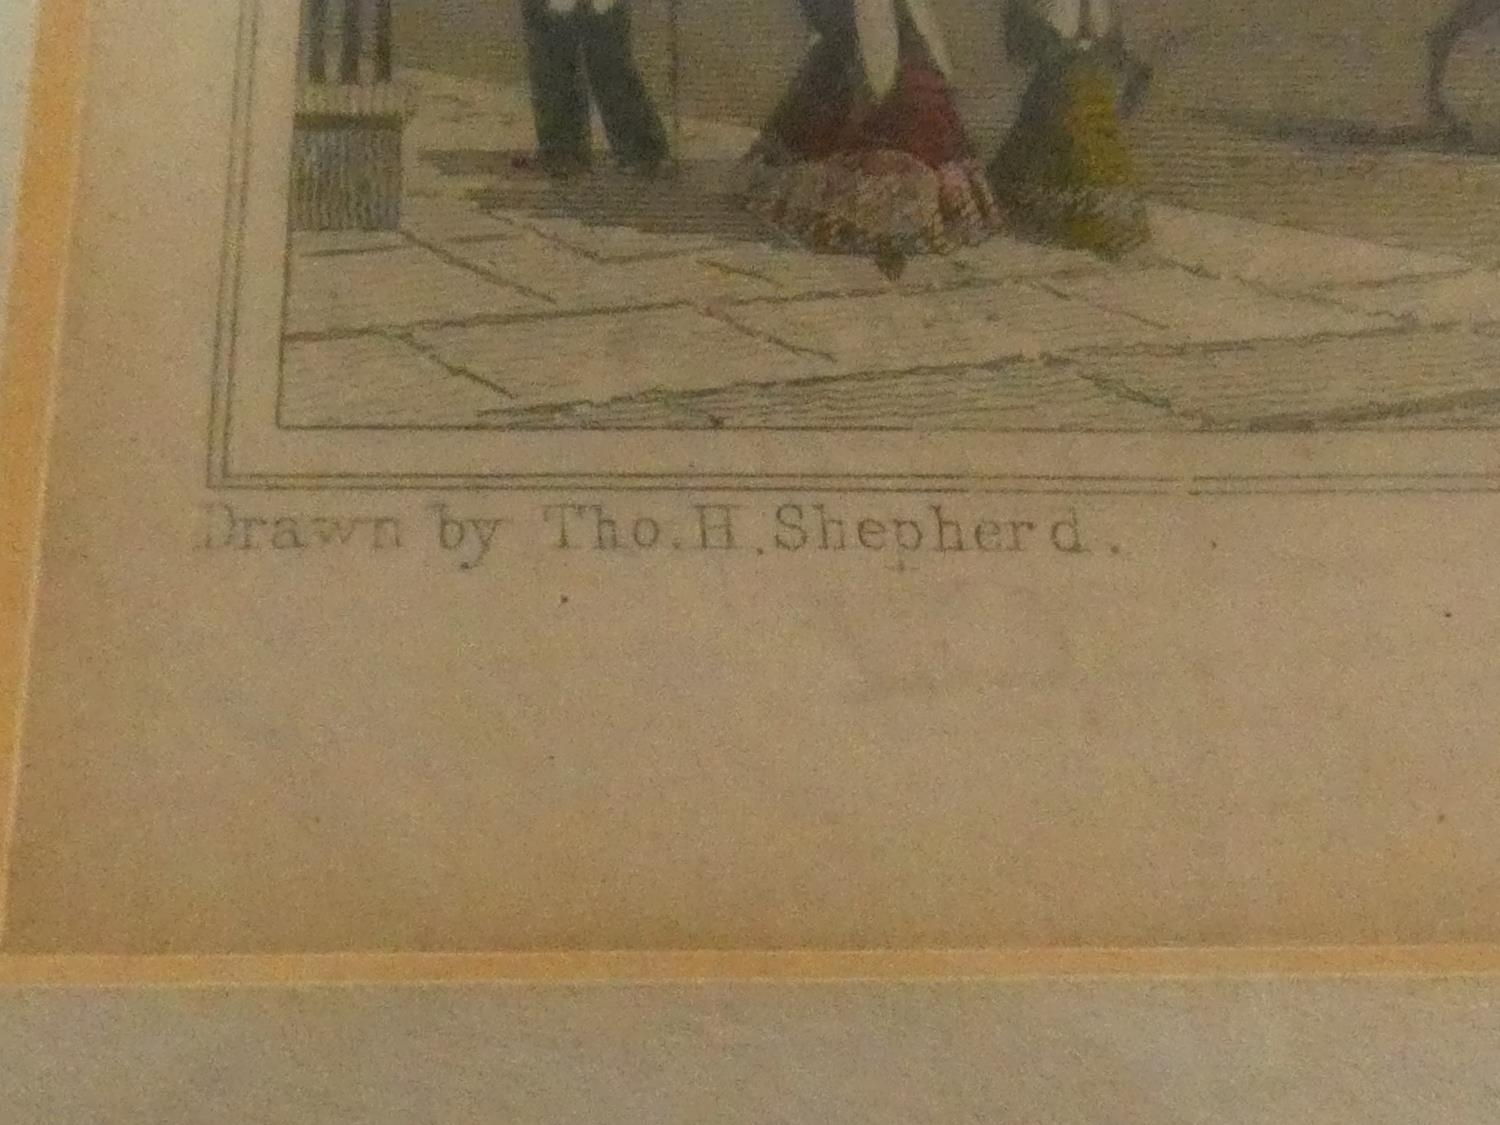 Seven framed and glazed antique hand coloured engravings, four of British places of interest and - Image 8 of 21